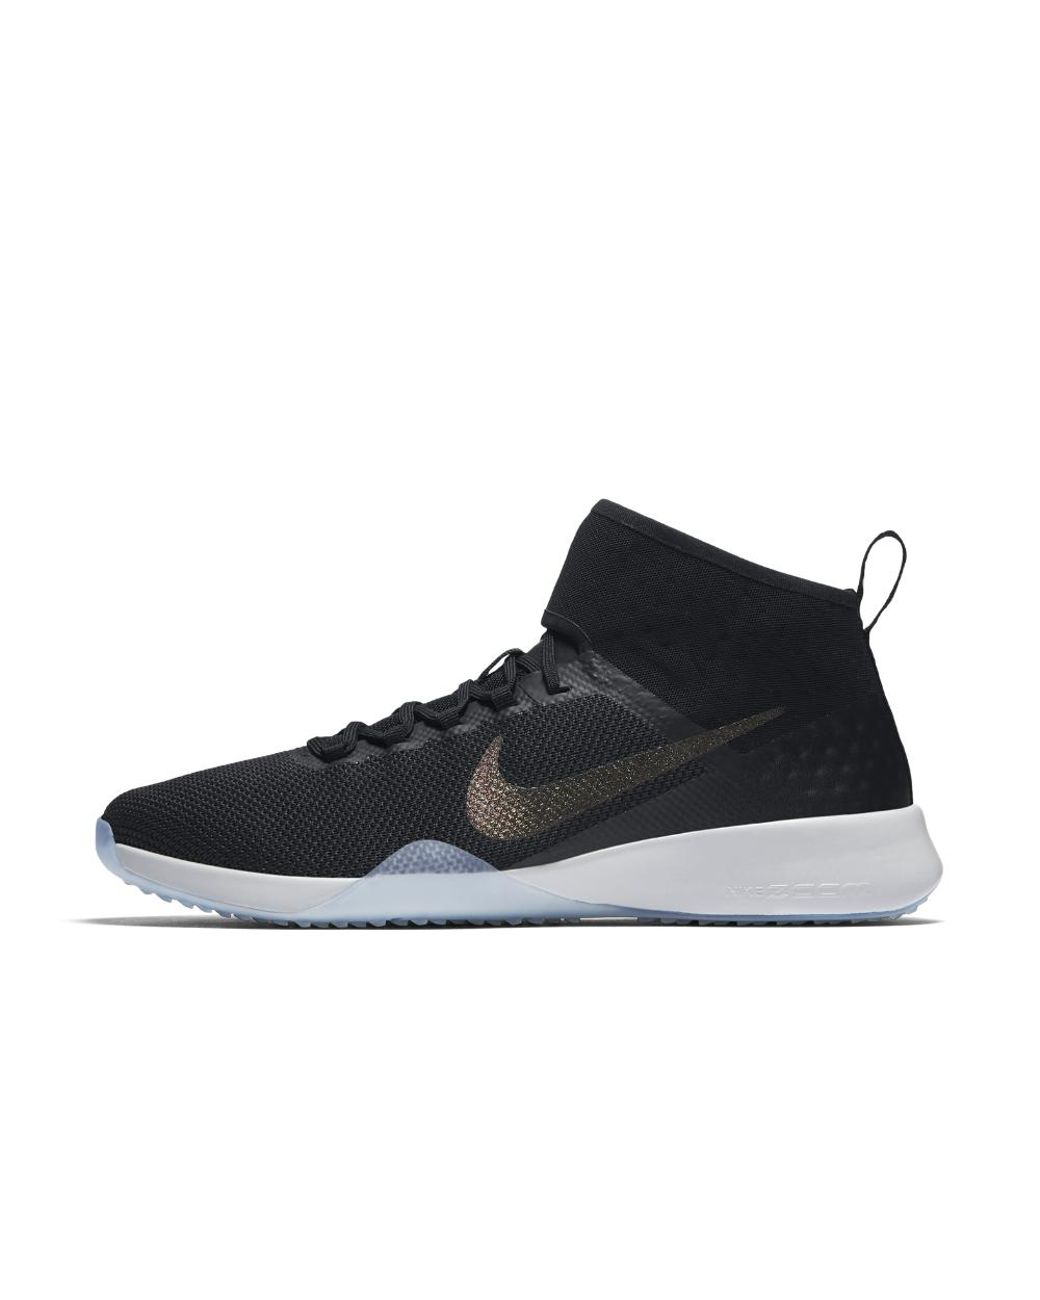 65100913c288a Lyst - Nike Air Zoom Strong 2 Metallic Women s Training Shoe in Black - Save  40%